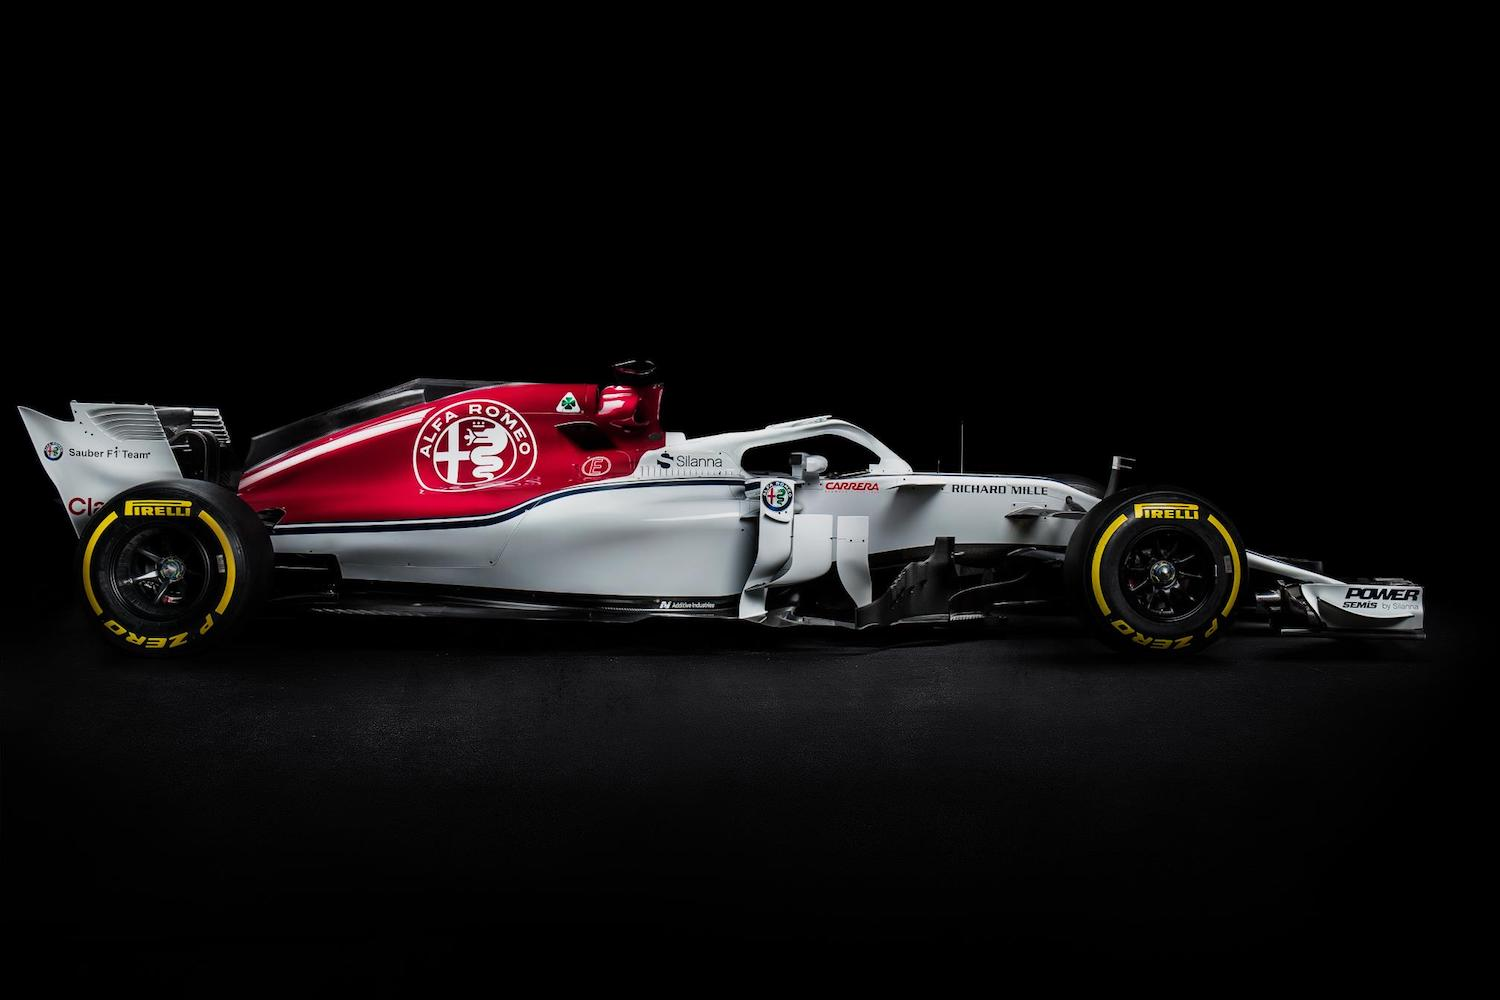 alfa romeo returns to formula 1 news behind the wheel. Black Bedroom Furniture Sets. Home Design Ideas